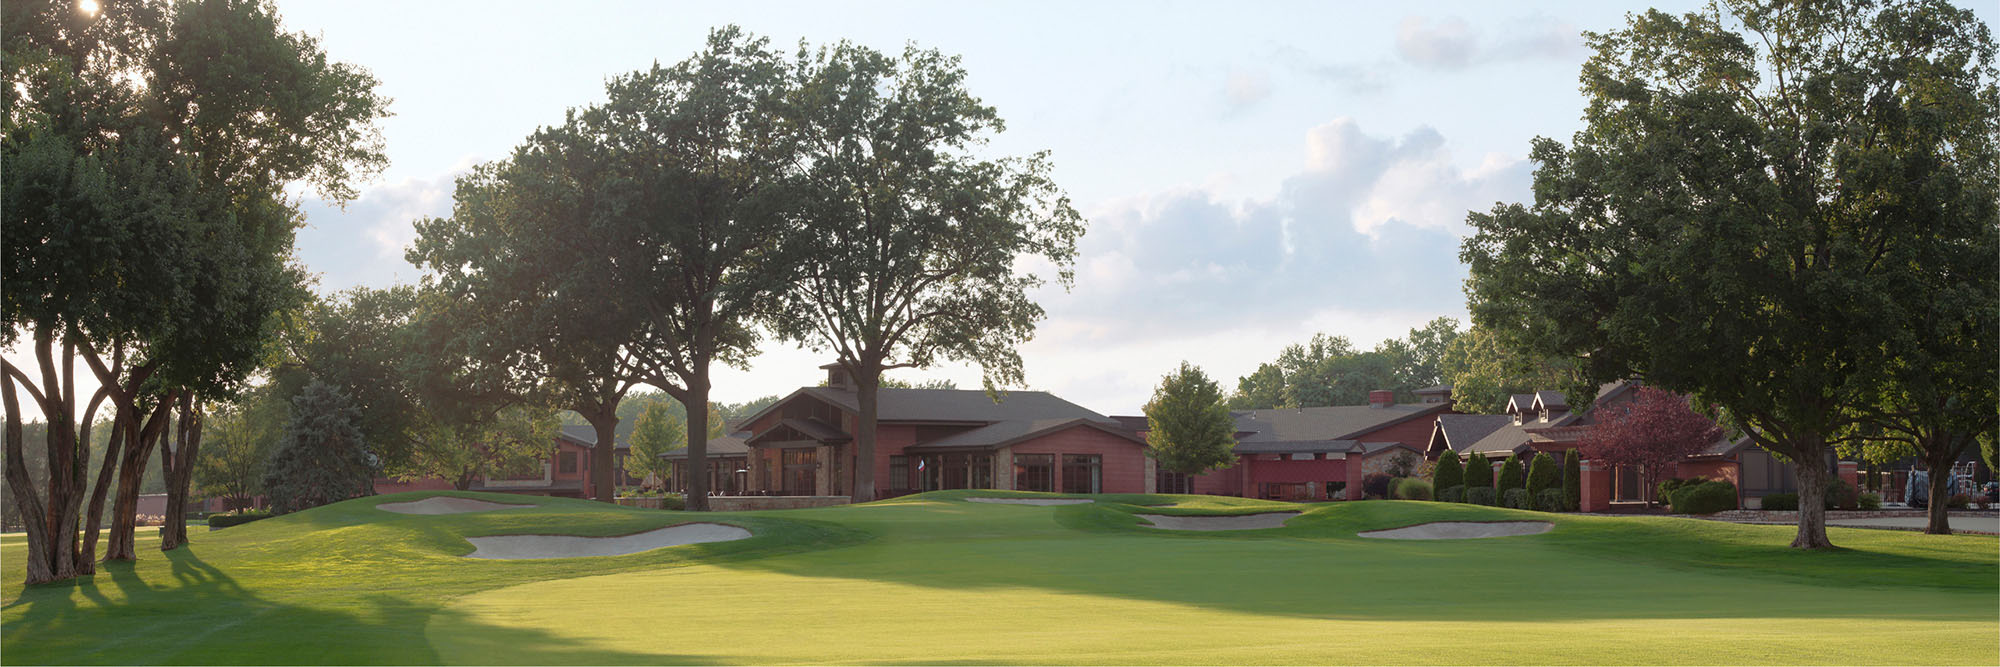 Golf Course Image - Indian Hills No. 18